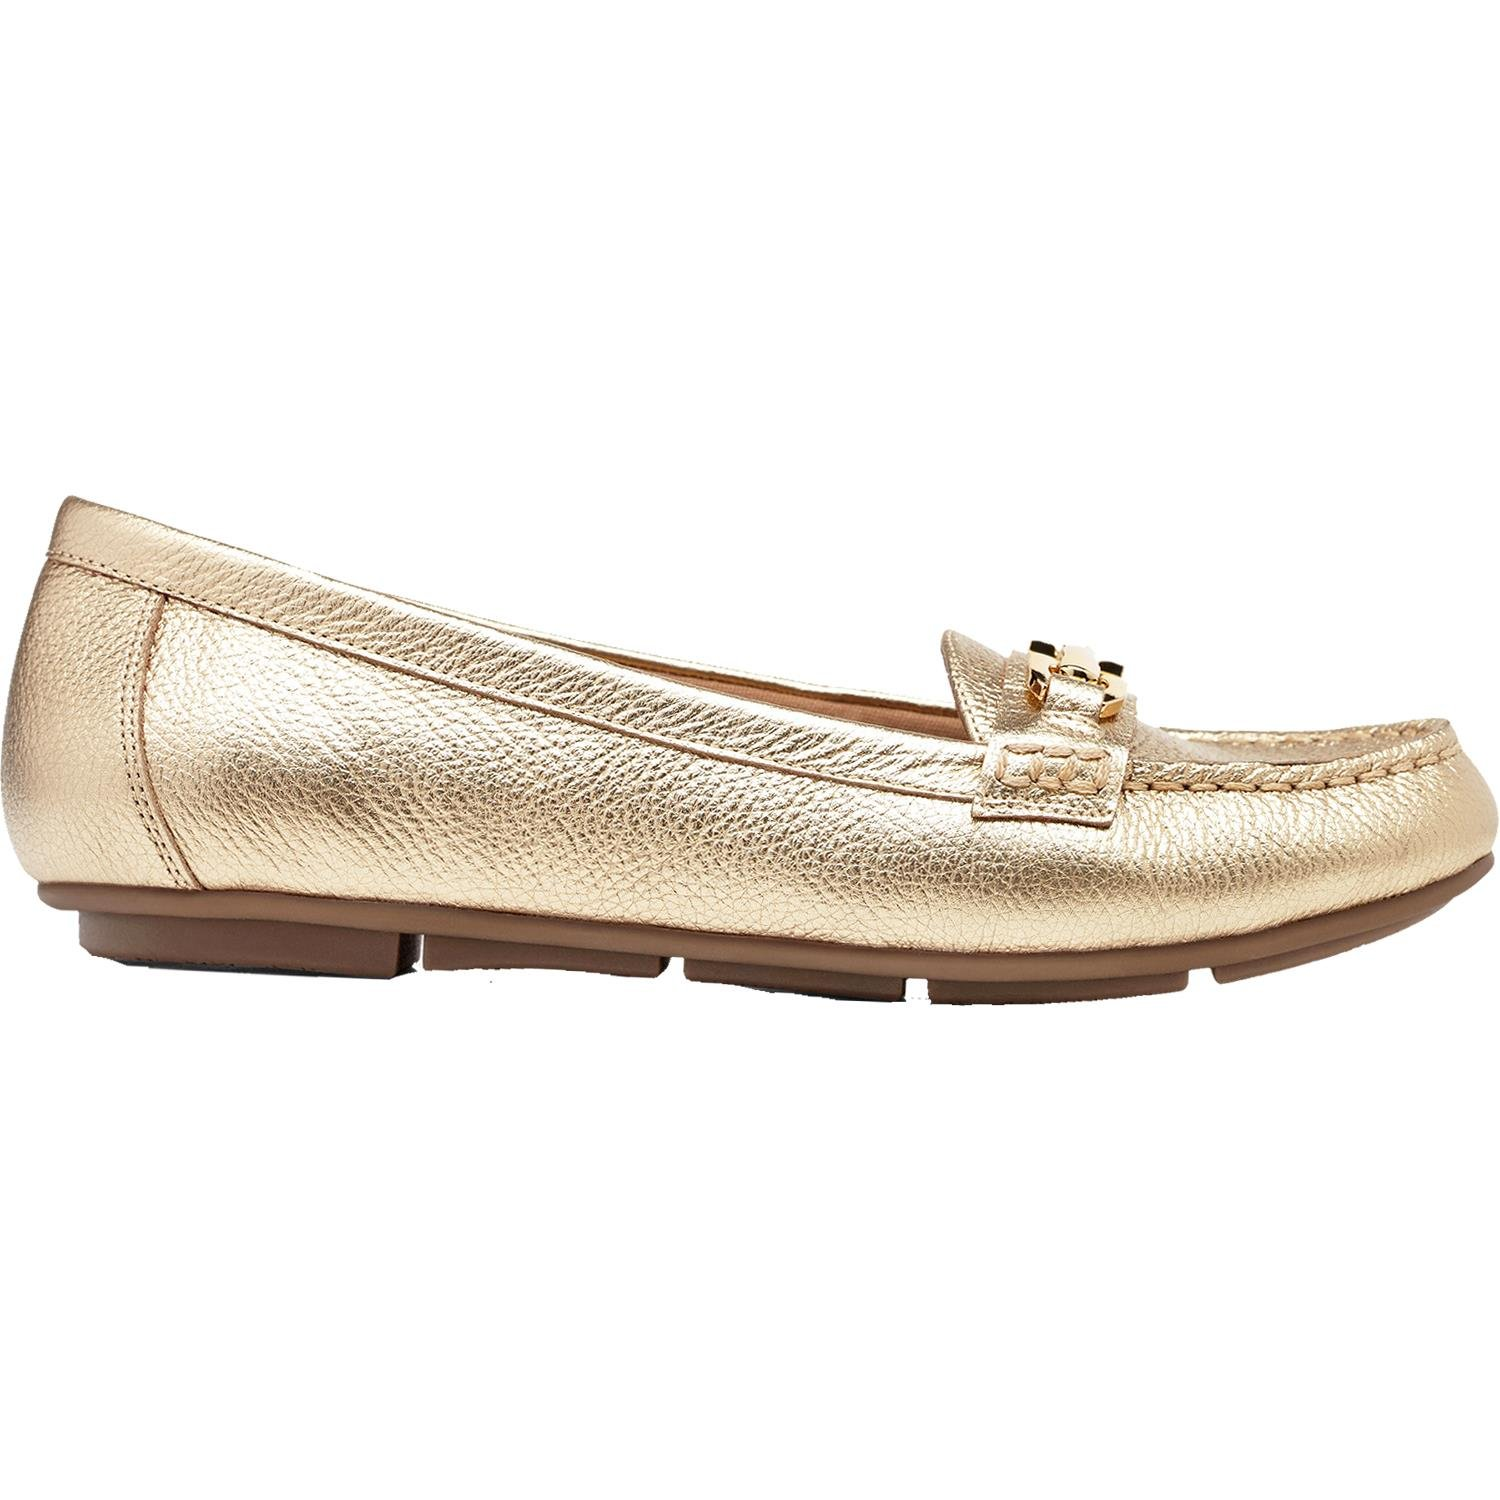 Vionic with Orthaheel Technology Women's Kenya Loafer,Gold,US 7 M